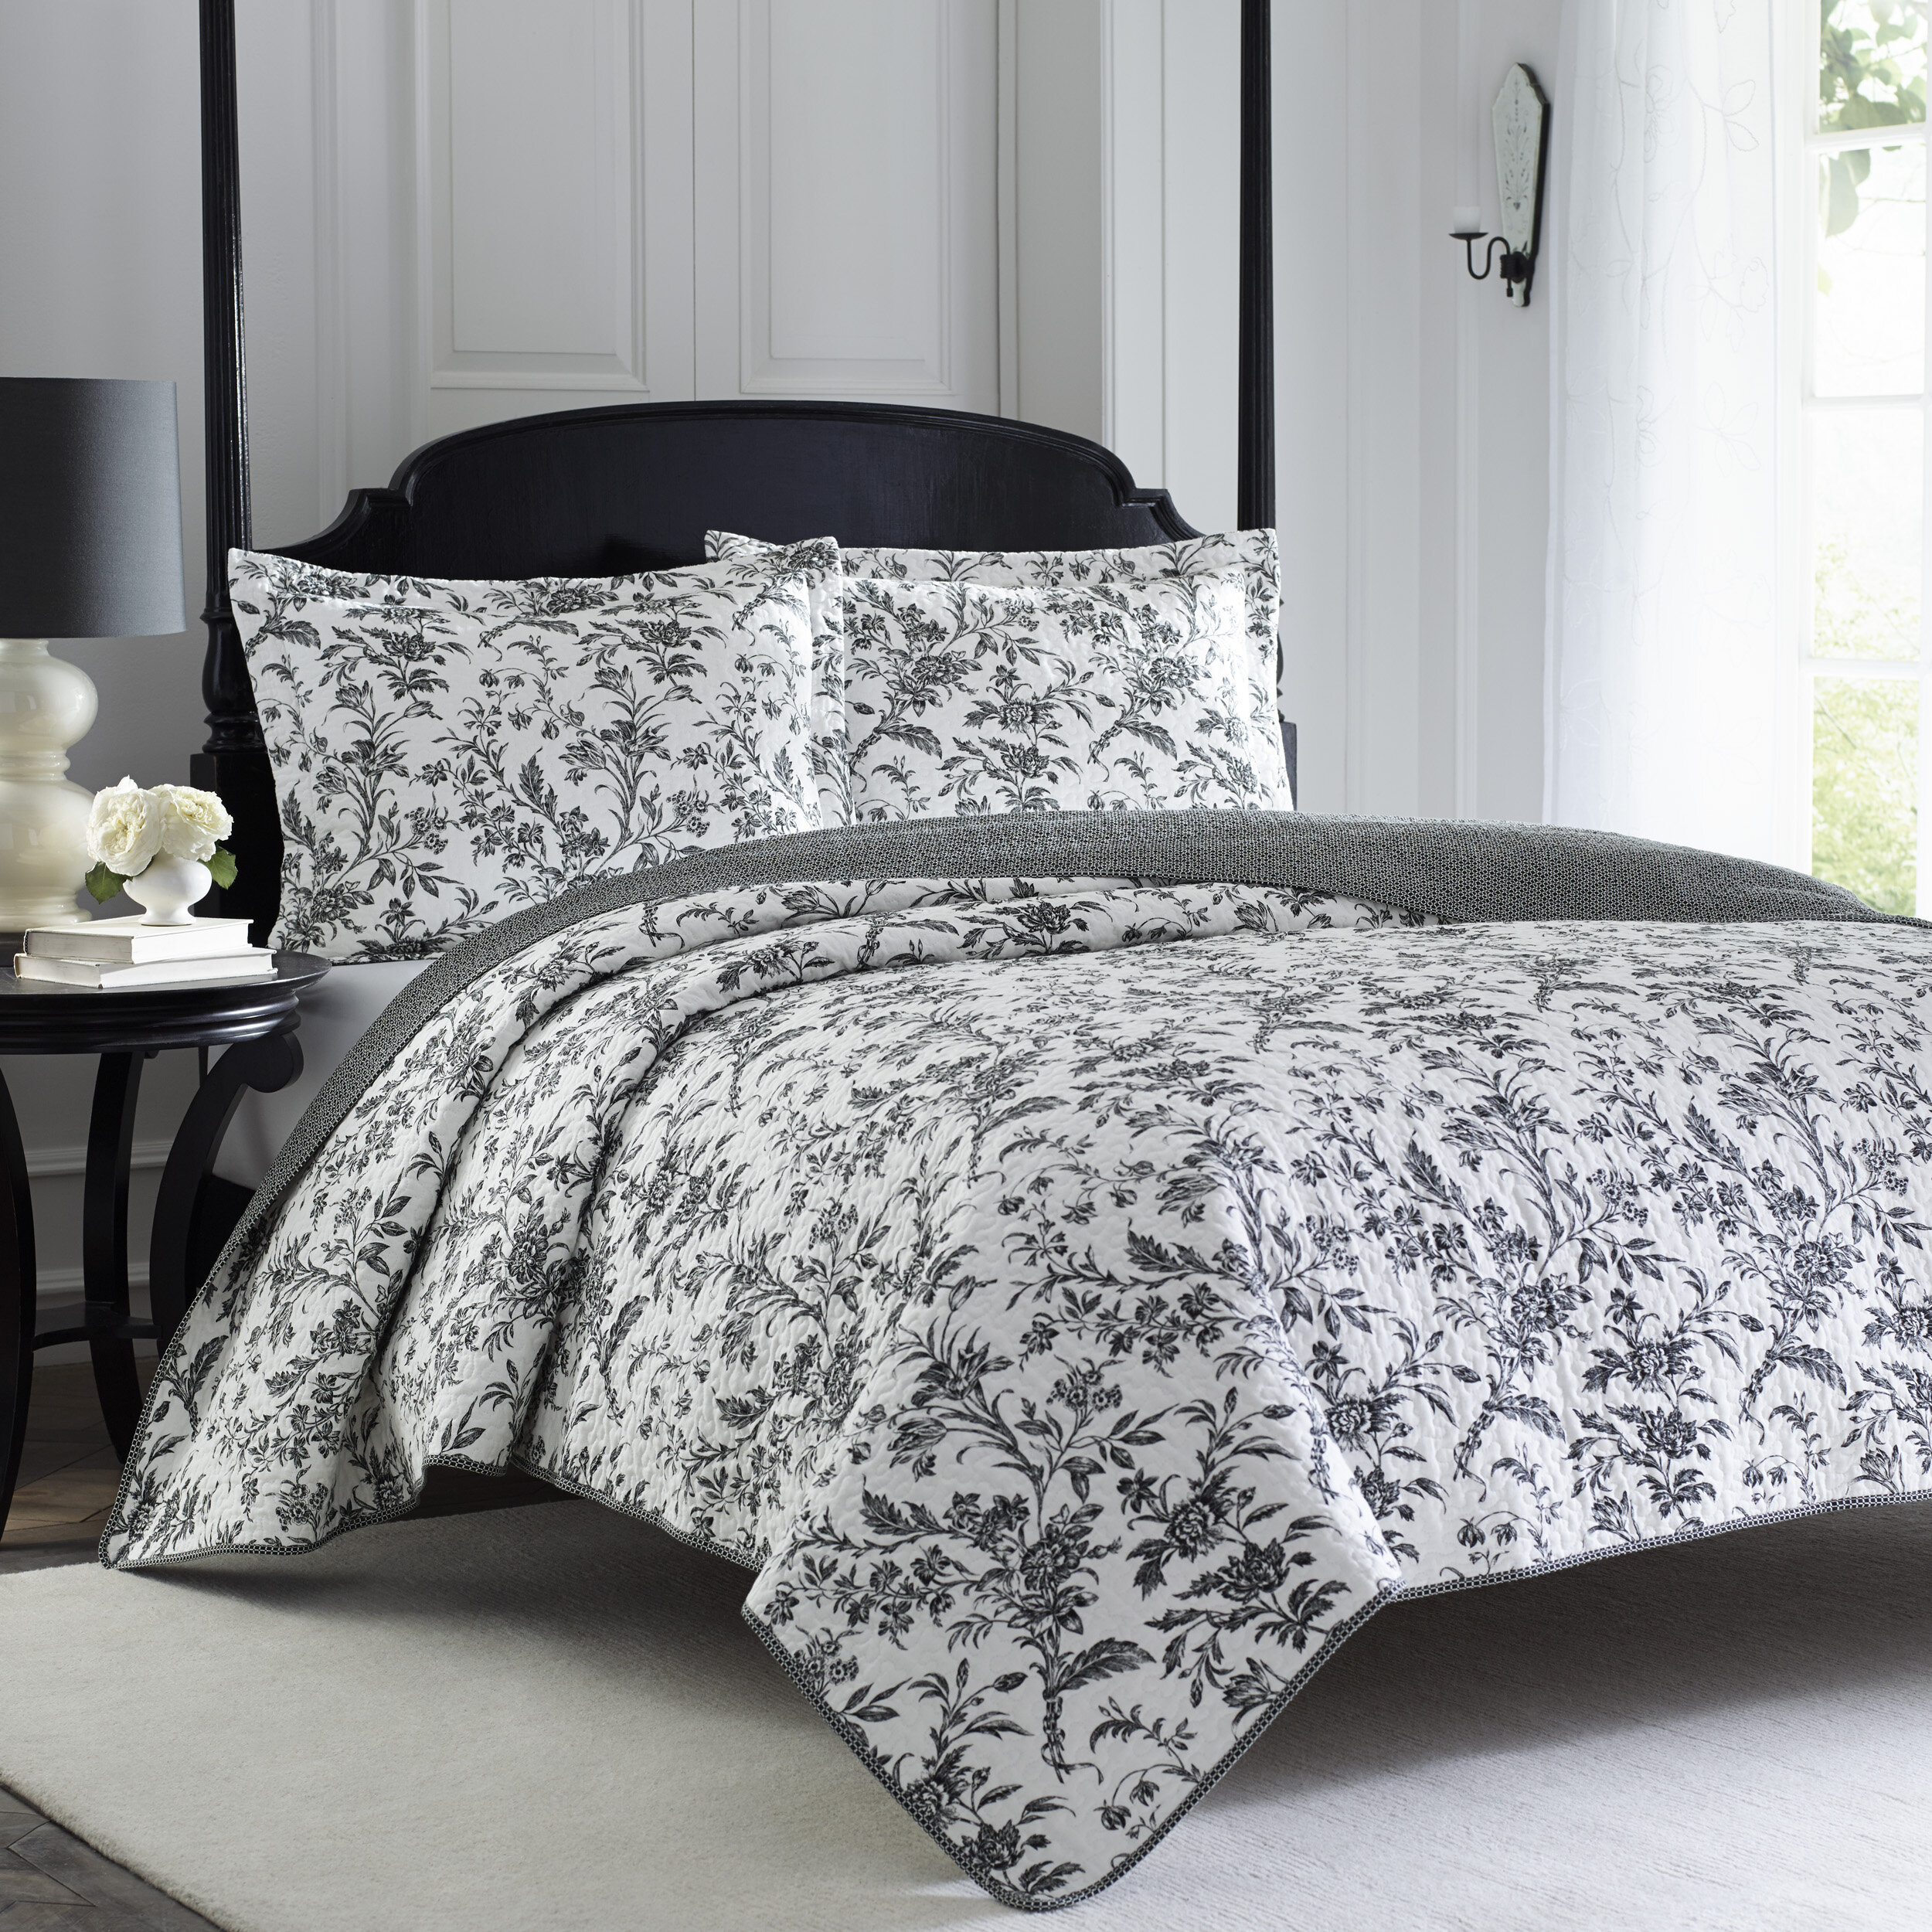 Laura Ashley Amberley Reversible Quilt Set By Laura Ashley Home U0026 Reviews |  Wayfair